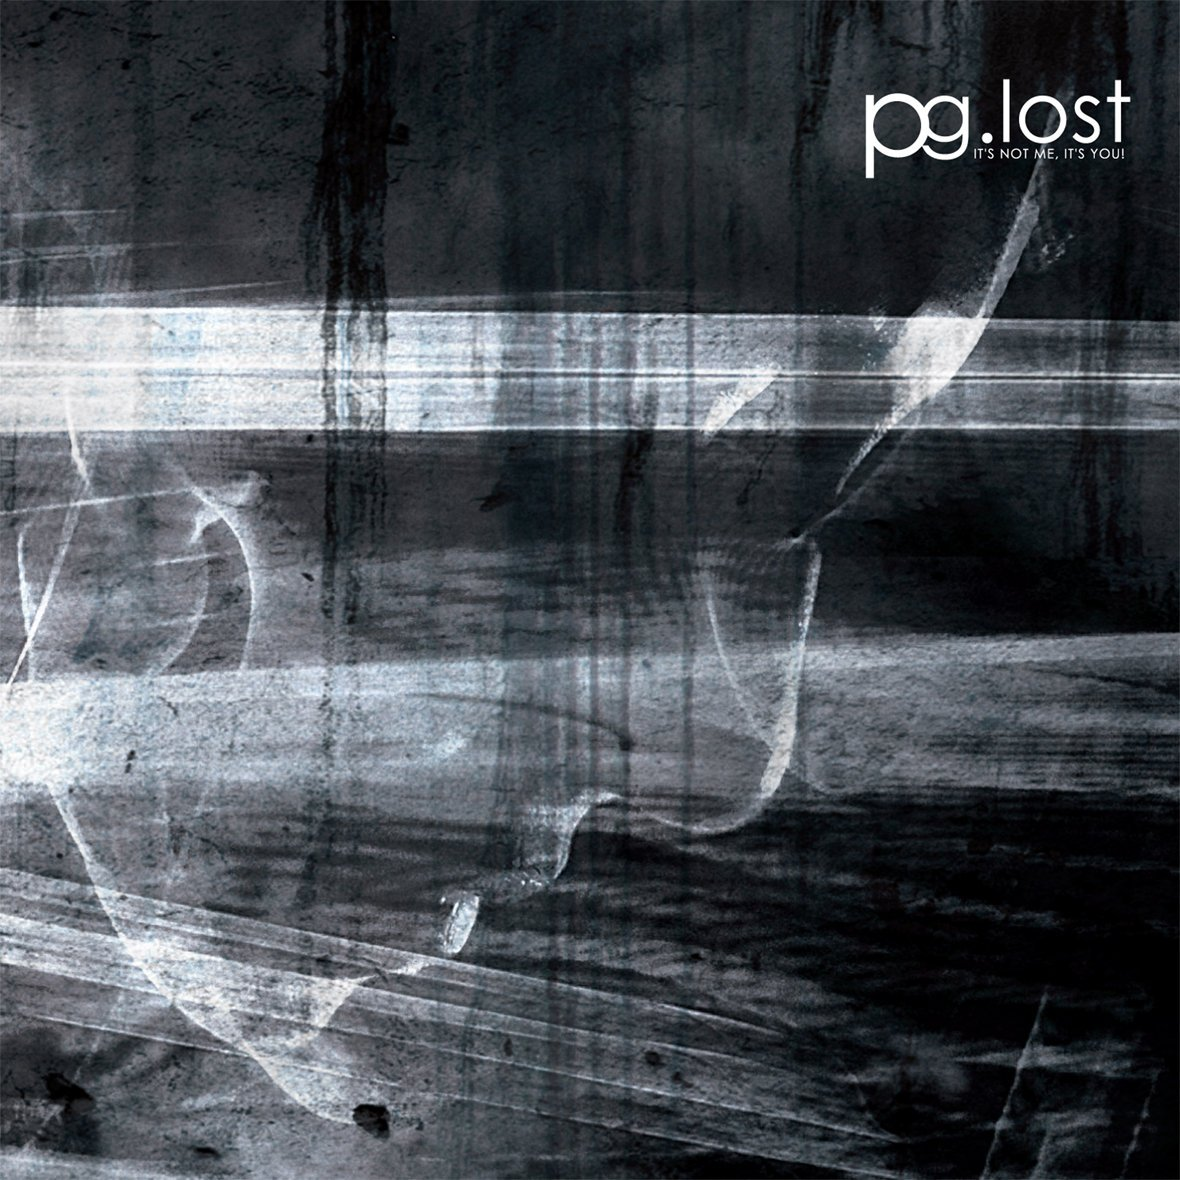 Pg.lost album It's Not Me, It's You!